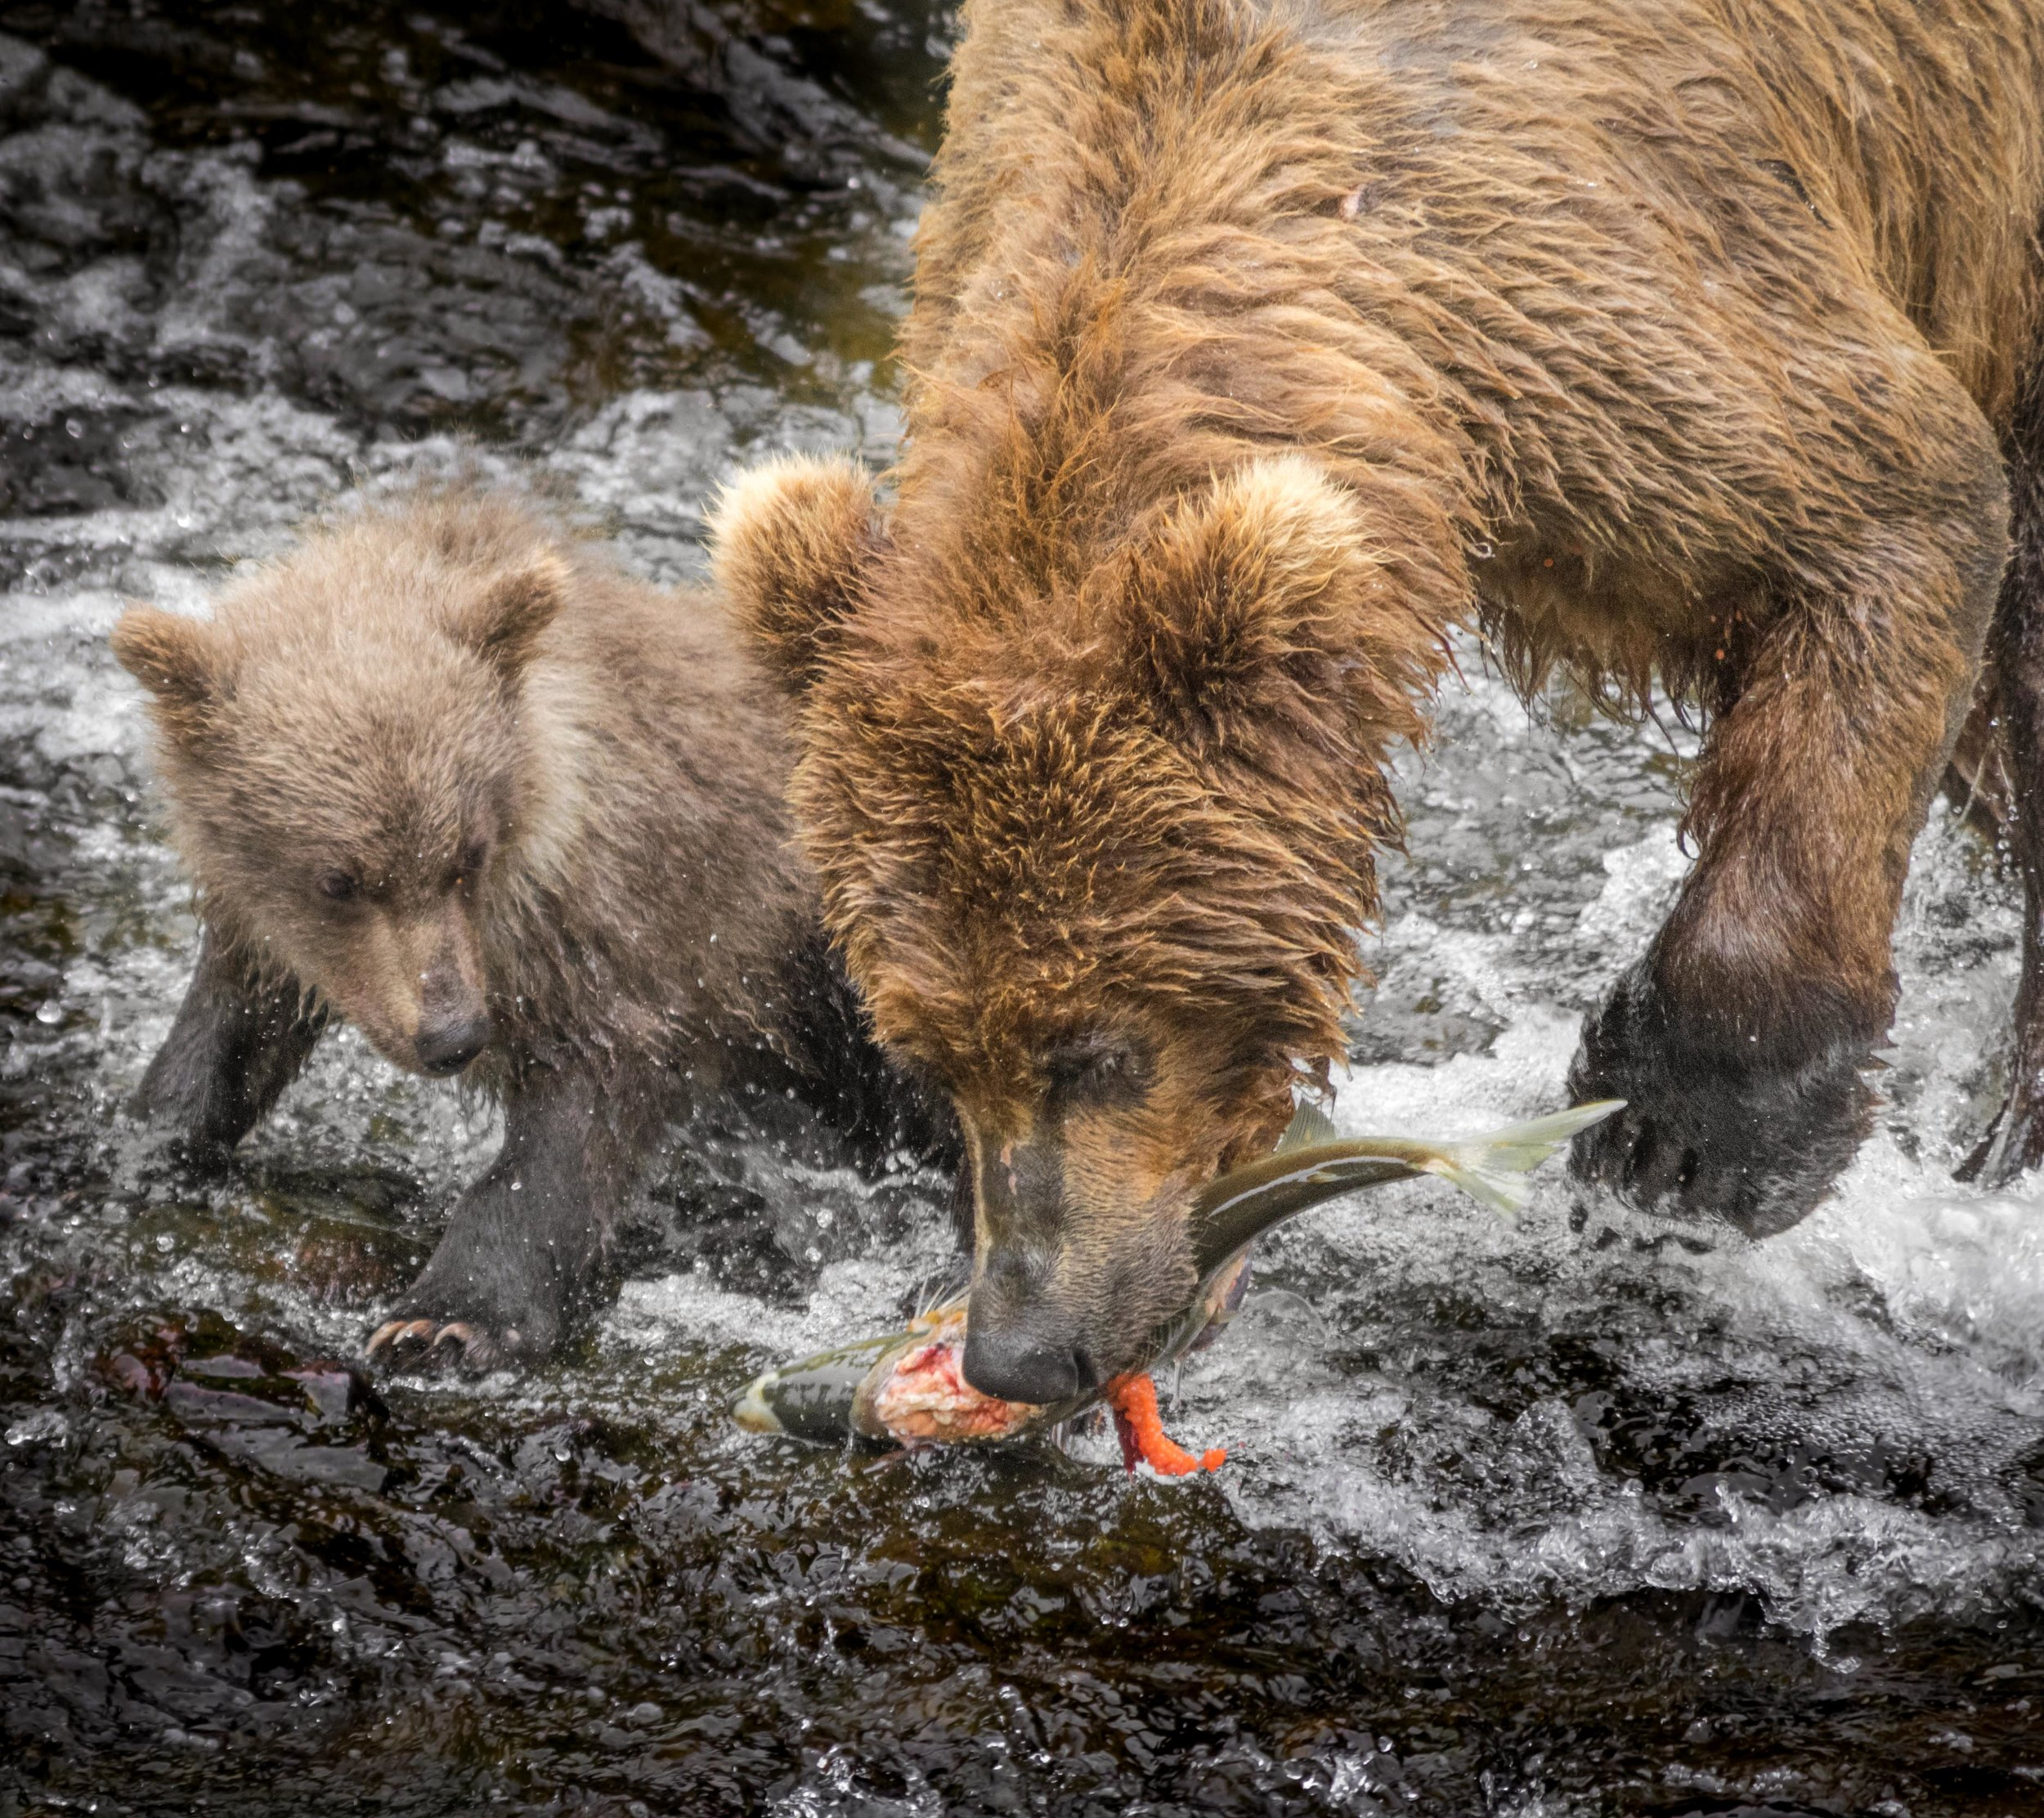 Grizzly Dinner